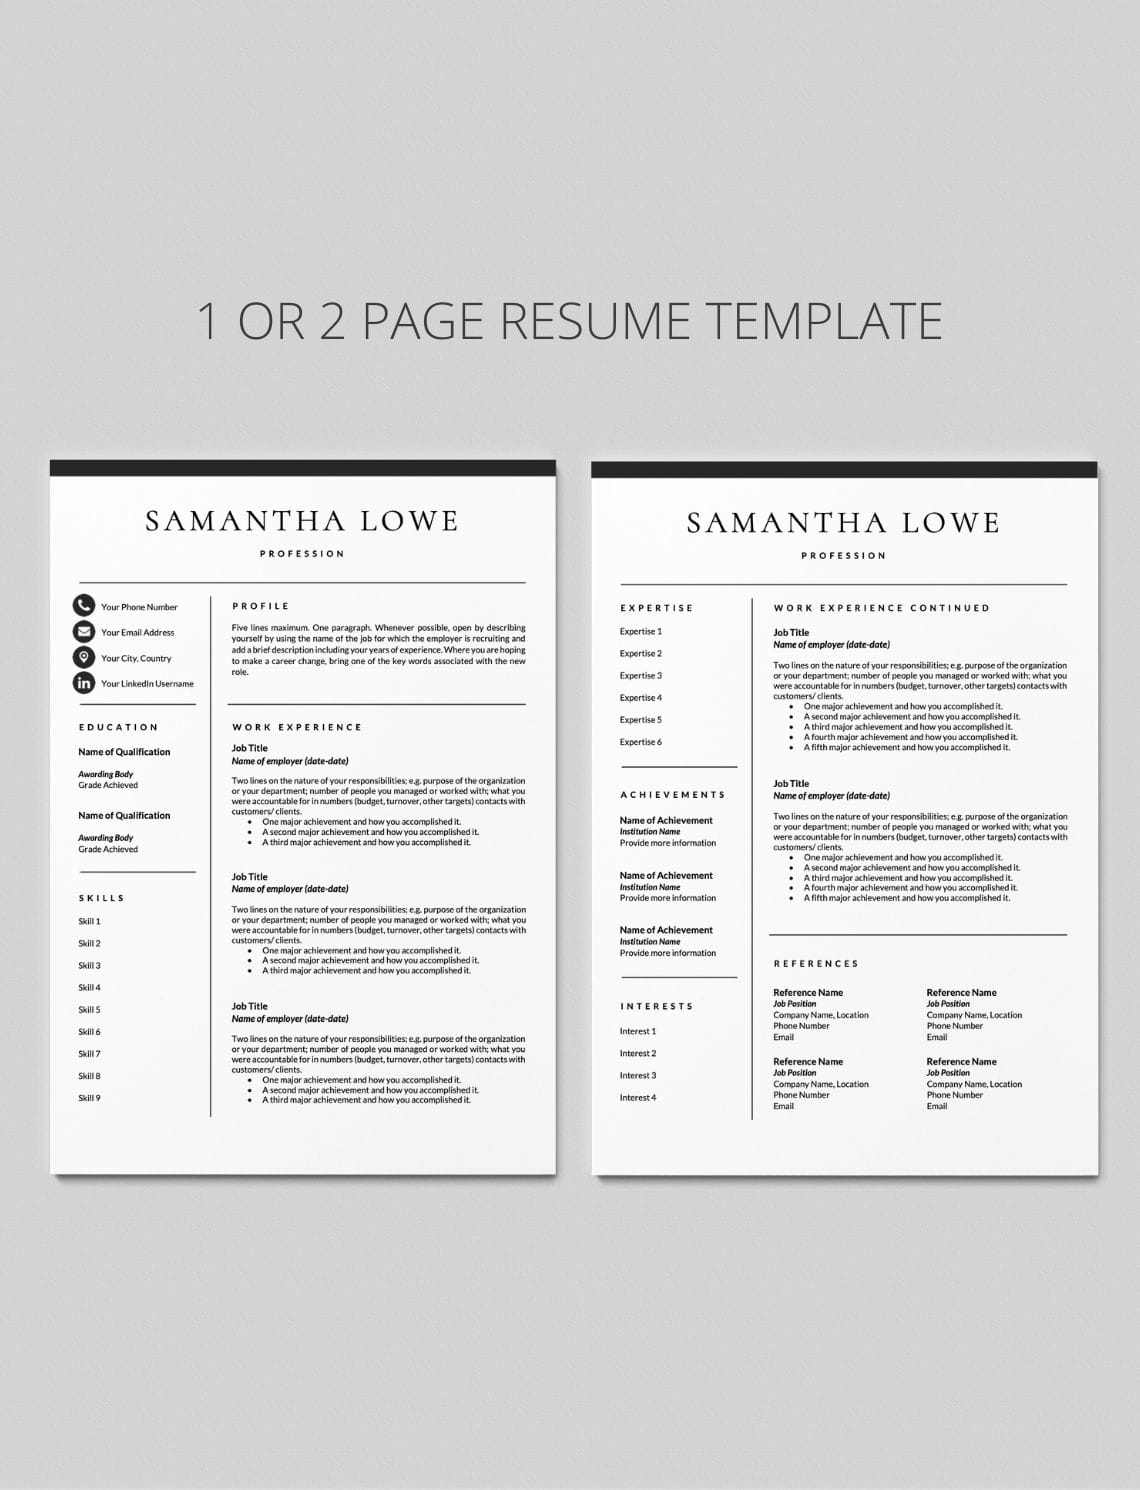 Cover Letter For Resume Template from careersoko.com